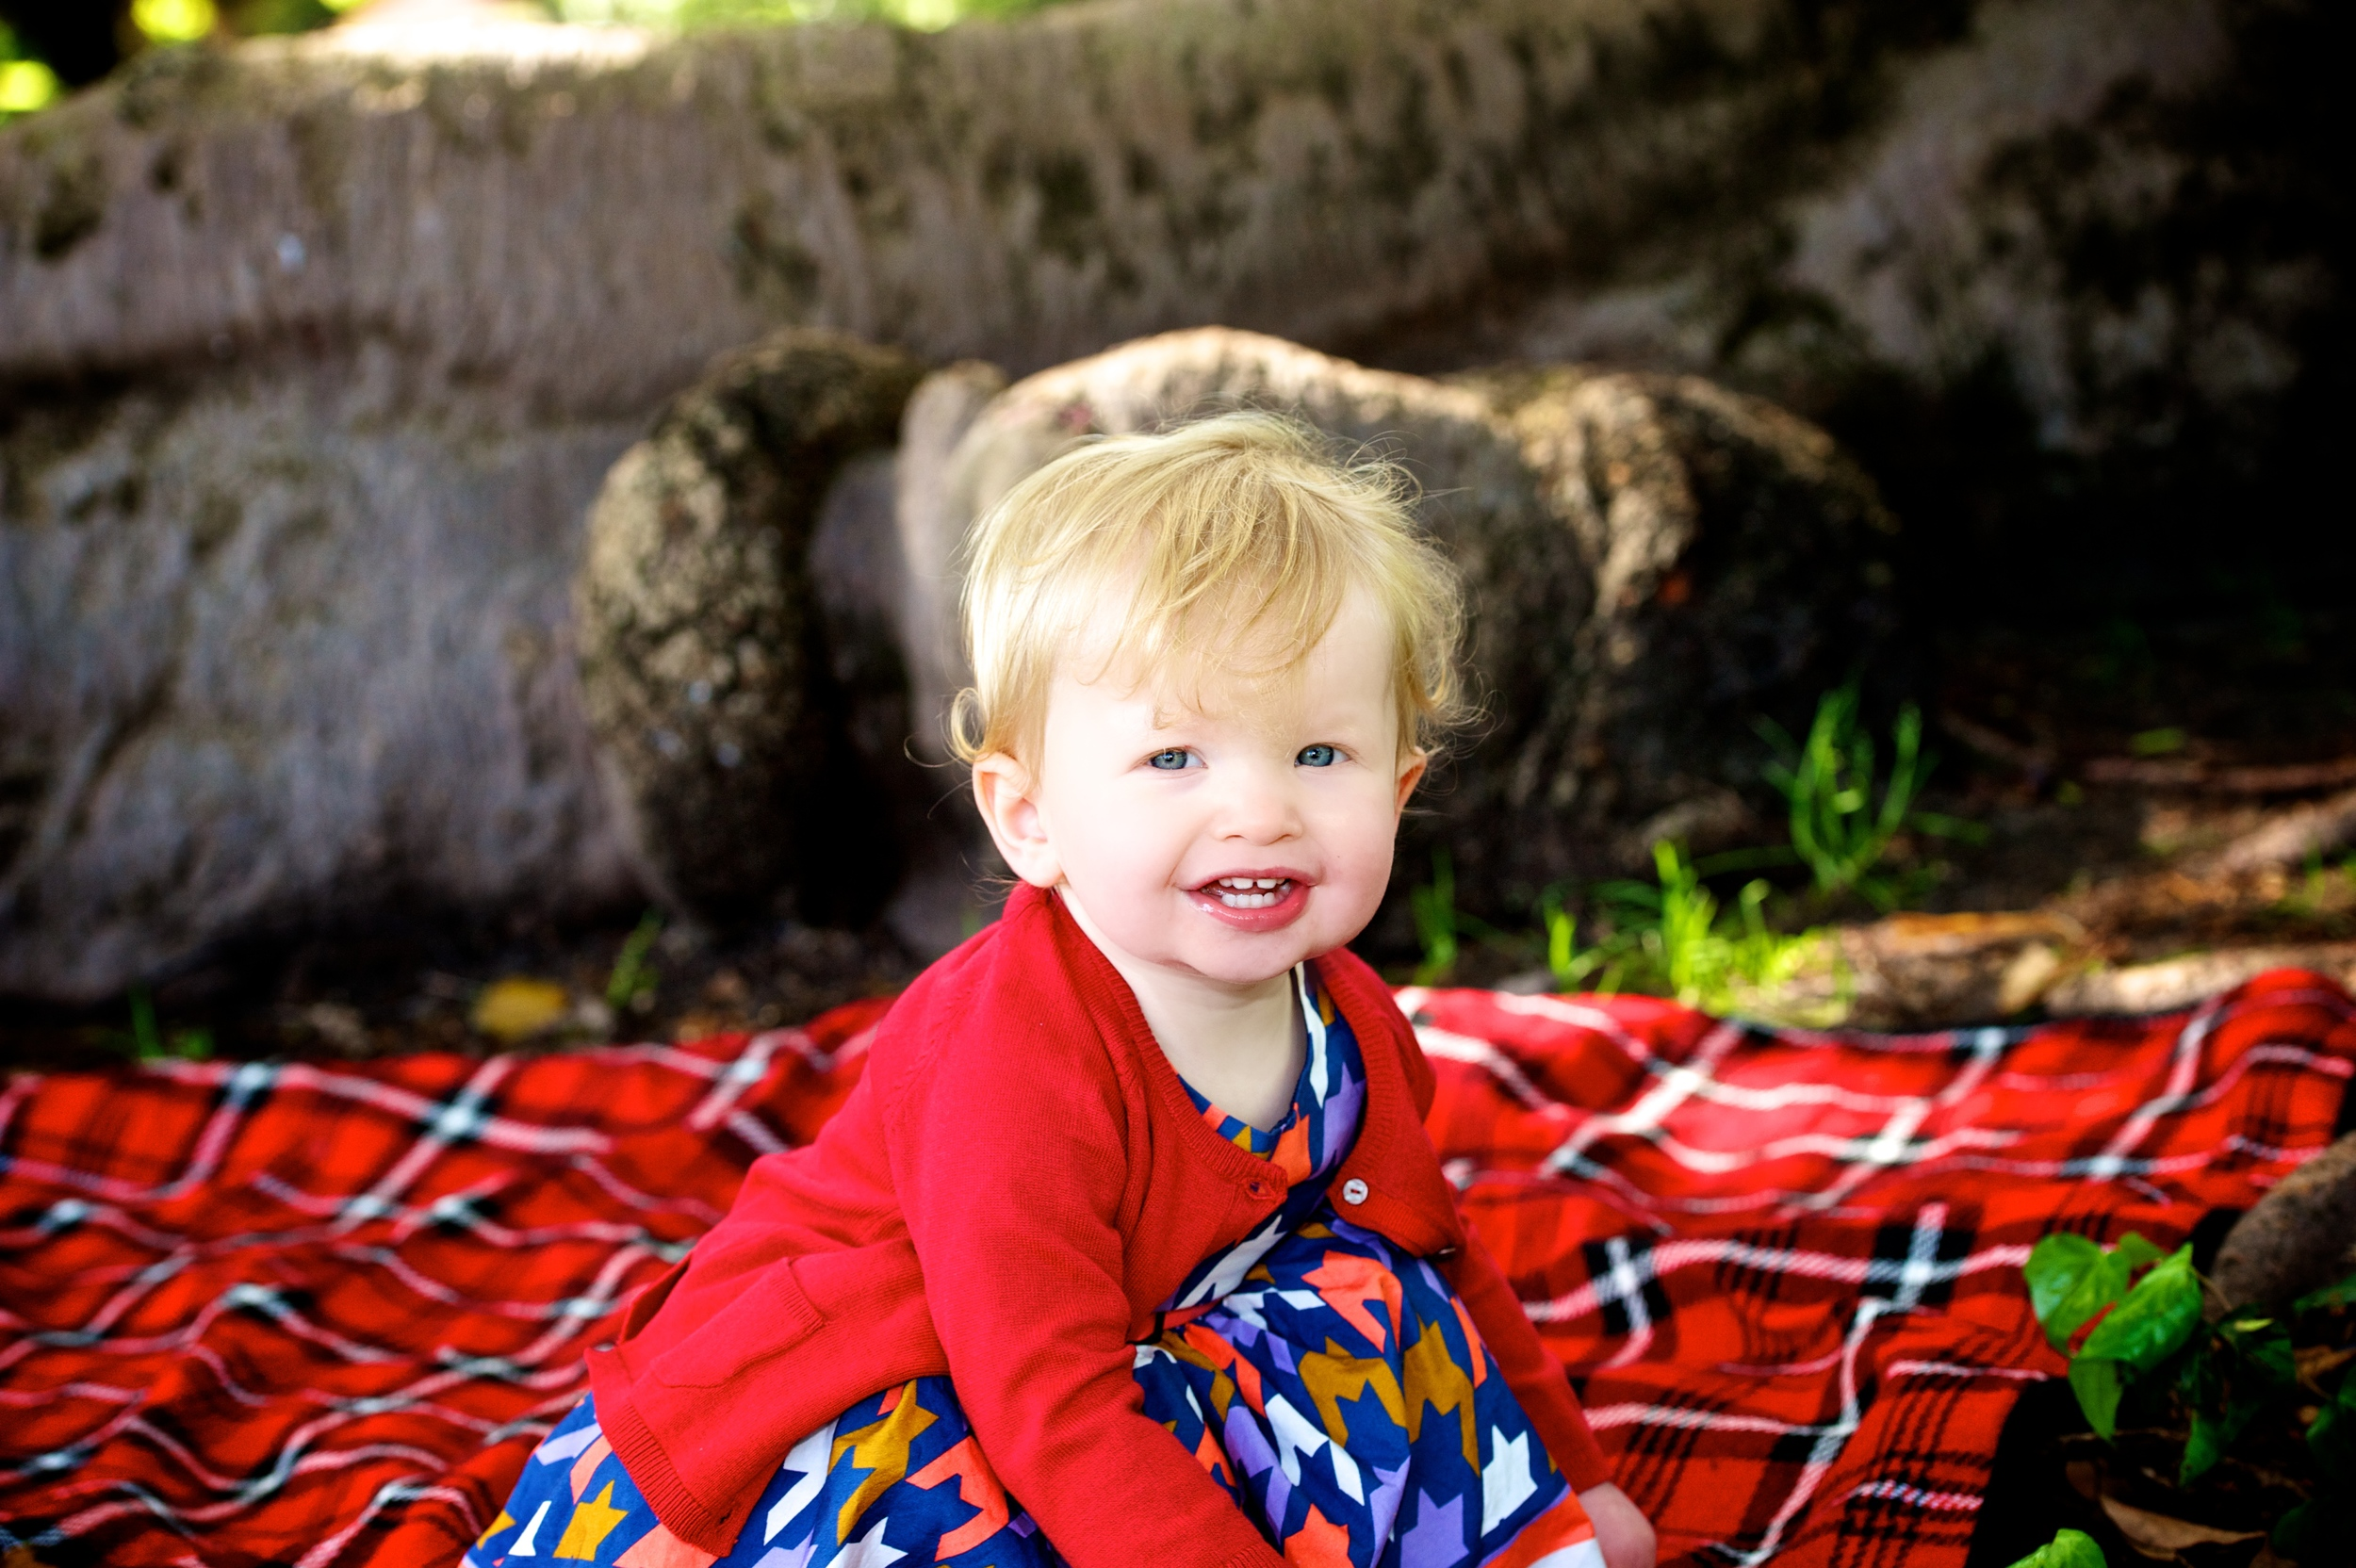 Parks such as Hyde park in Perth are a perfect place to photography young families as they play